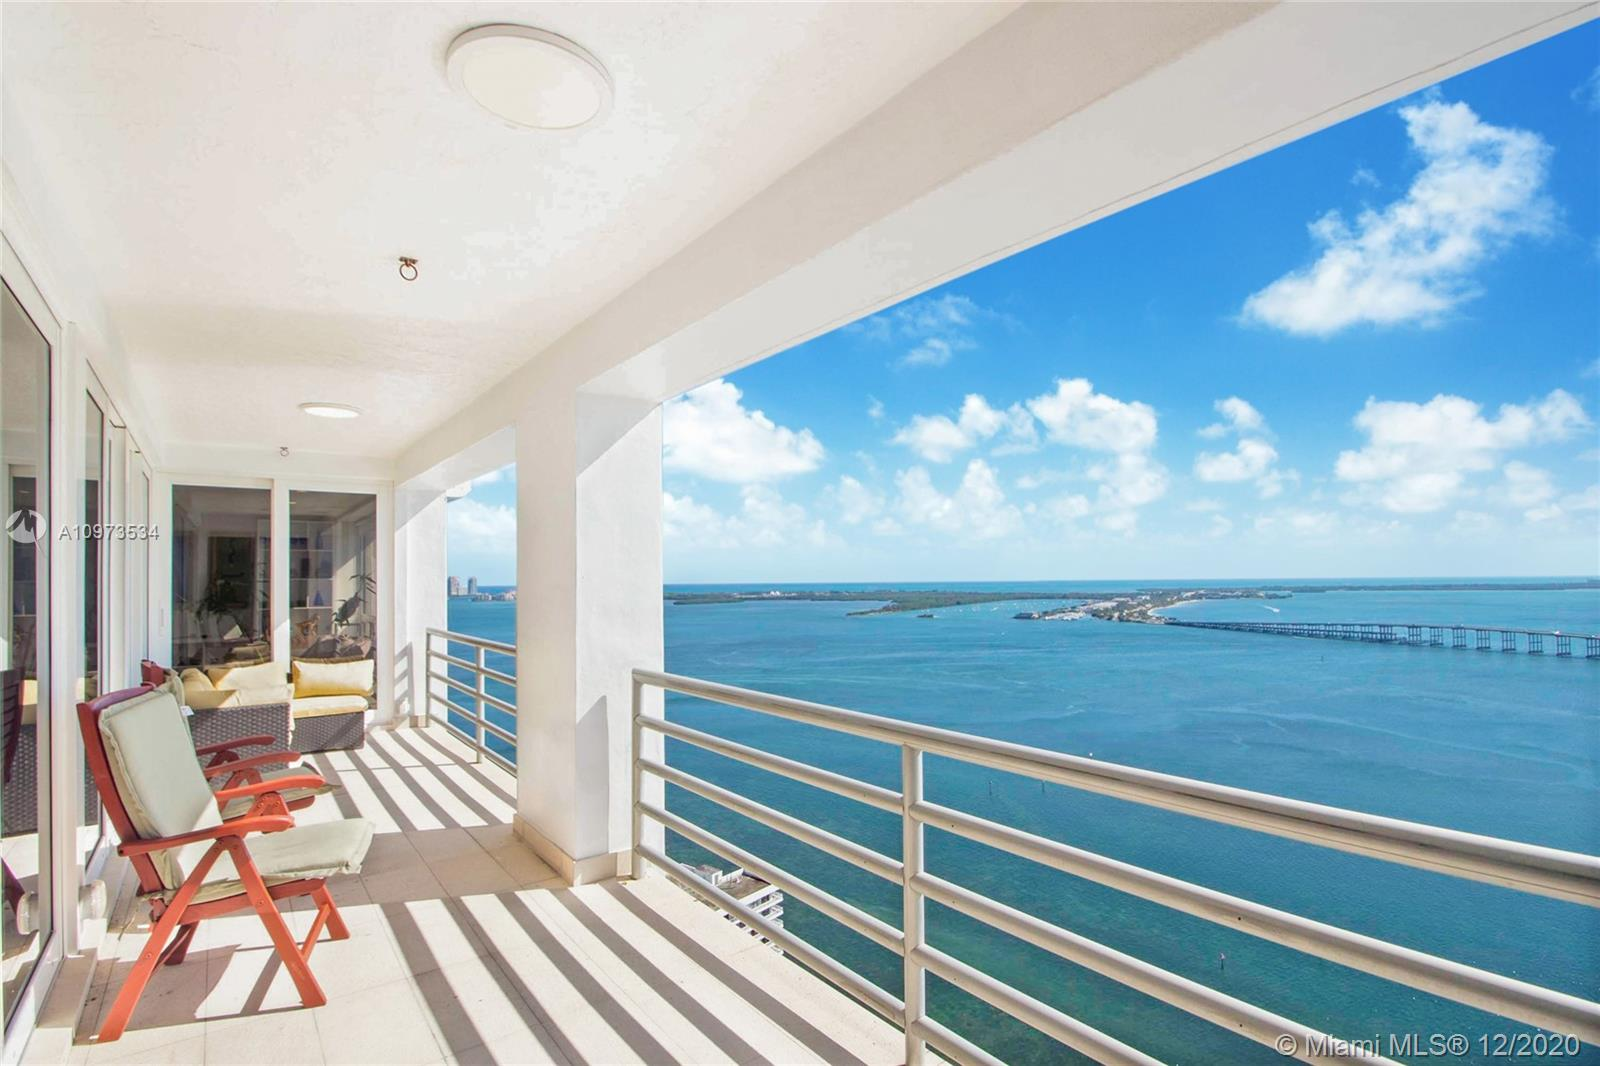 One of a kind Penthouse fully remodeled, completely Furnish. Unit provides a generous open floor plan of 3,280 sqft with 4 bedoroms, 4 bathrooms and separate Family room. 2 assigned parkings and both are on the first floor. Incredible panoramic Ocean/ Bay water views, spacious balconies with new impact resistant sliding glass doors and electric storm shutters in all windows. Additional luxury finishes and details include a gourmet granite kitchen with Sub-Zero appliances, a built-in music system, custom lighting features and a private poolside. Brand-new A/C units and water heater. The Palace is a 5-star waterfront concierge condominium with 24-hr security, swimming pool, fitness center and tennis courts, conveniently located in Brickell. Sold Turn Key